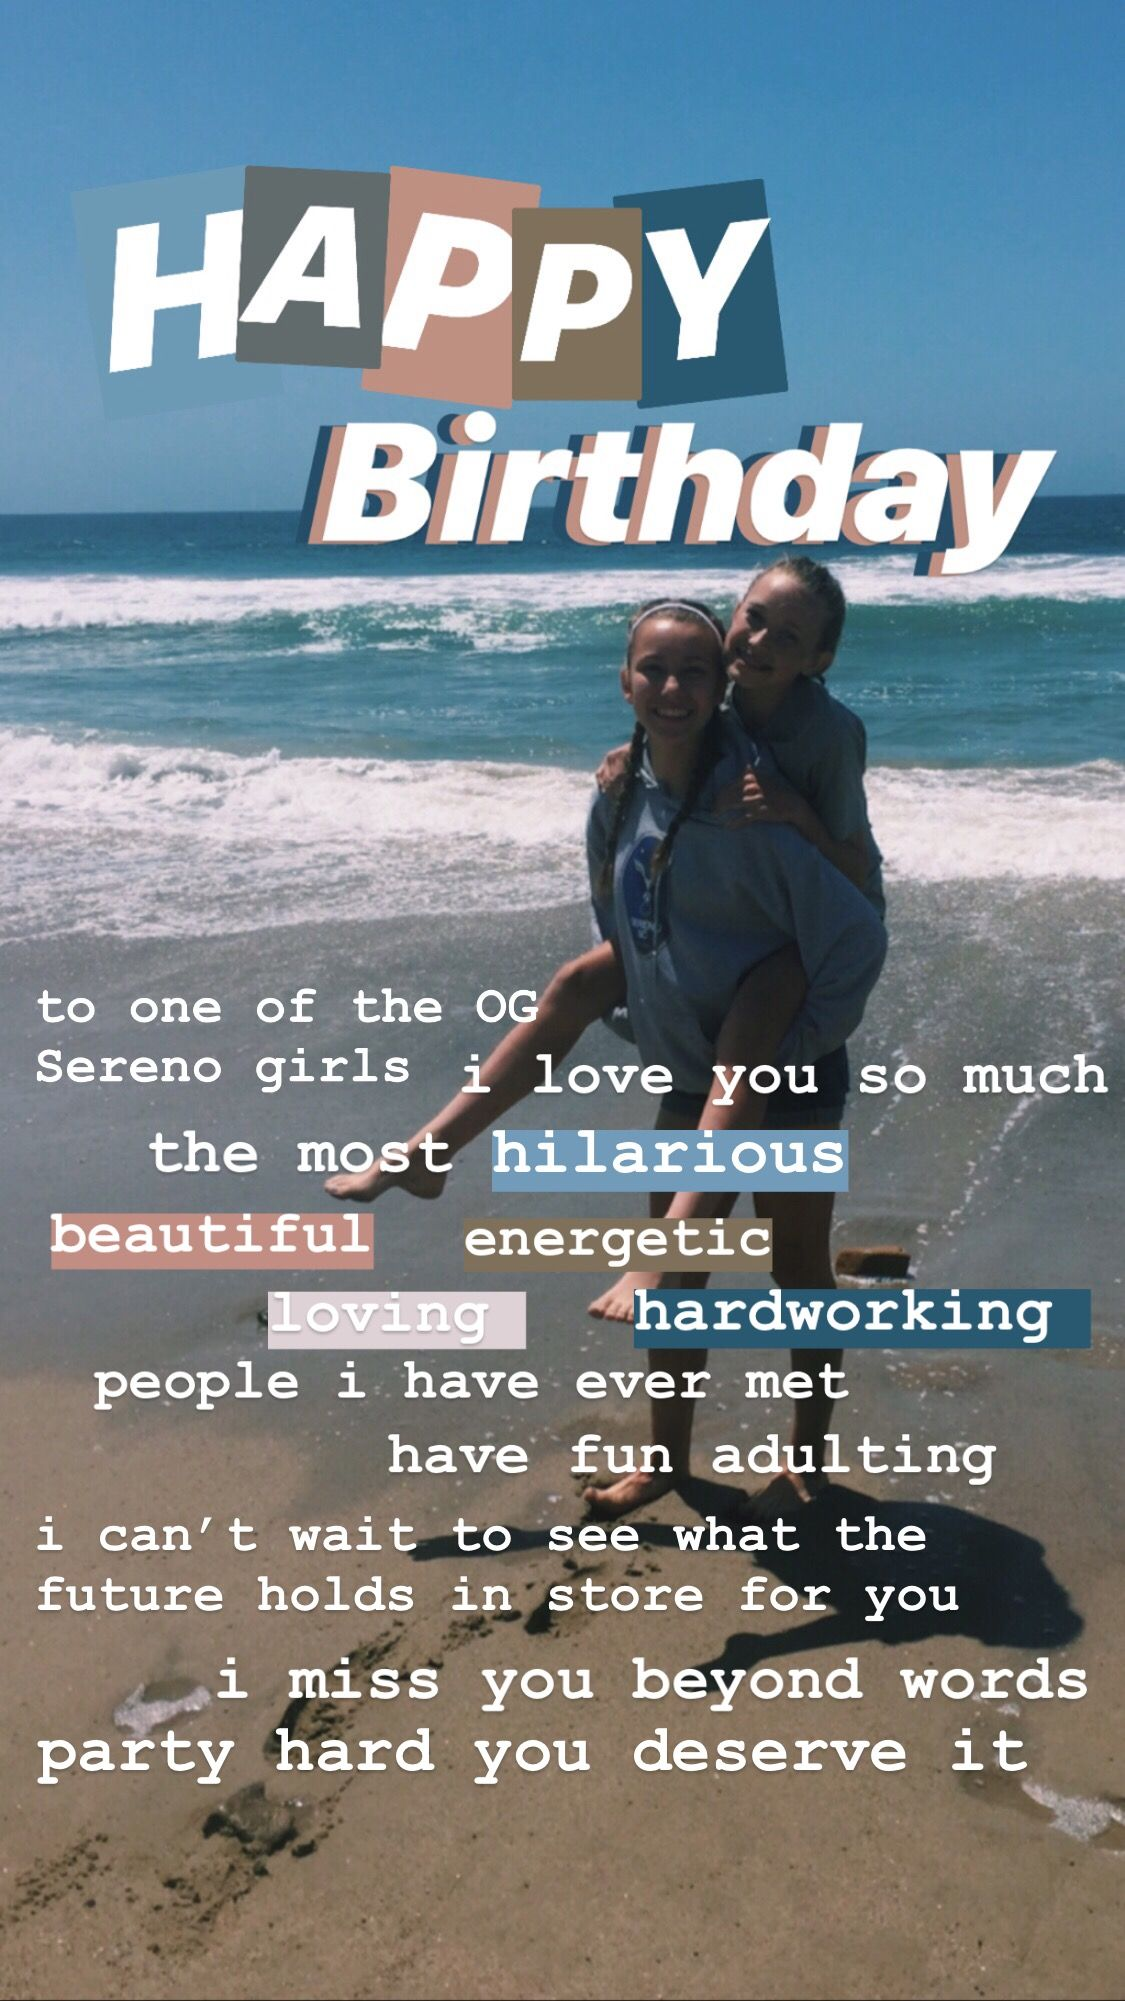 Pin by Lucy kazums on insta stories   Happy birthday quotes for ...